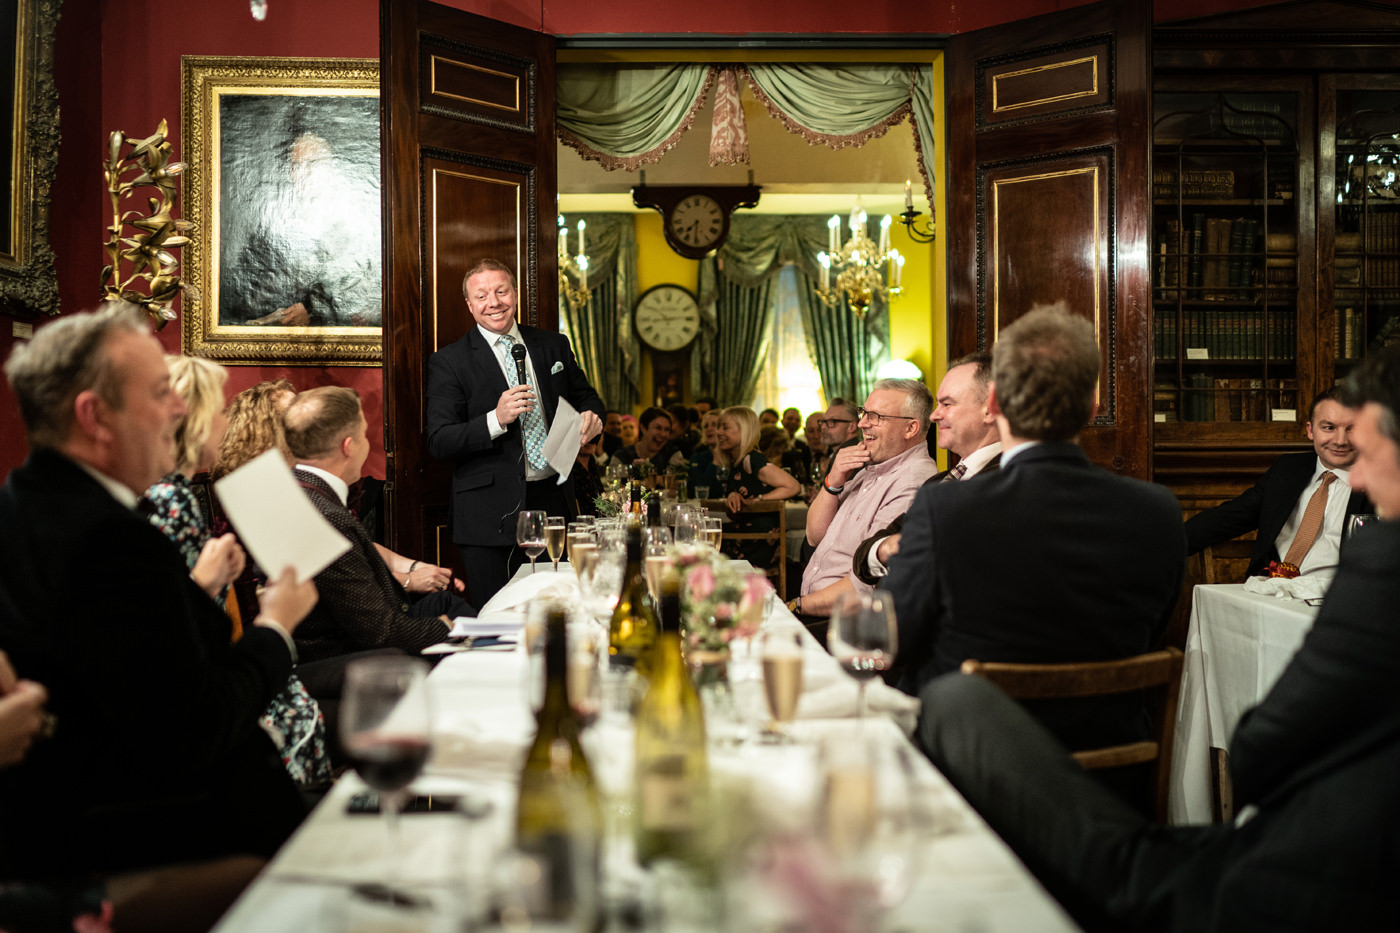 Wedding speeches upstairs at Brunswick House in London